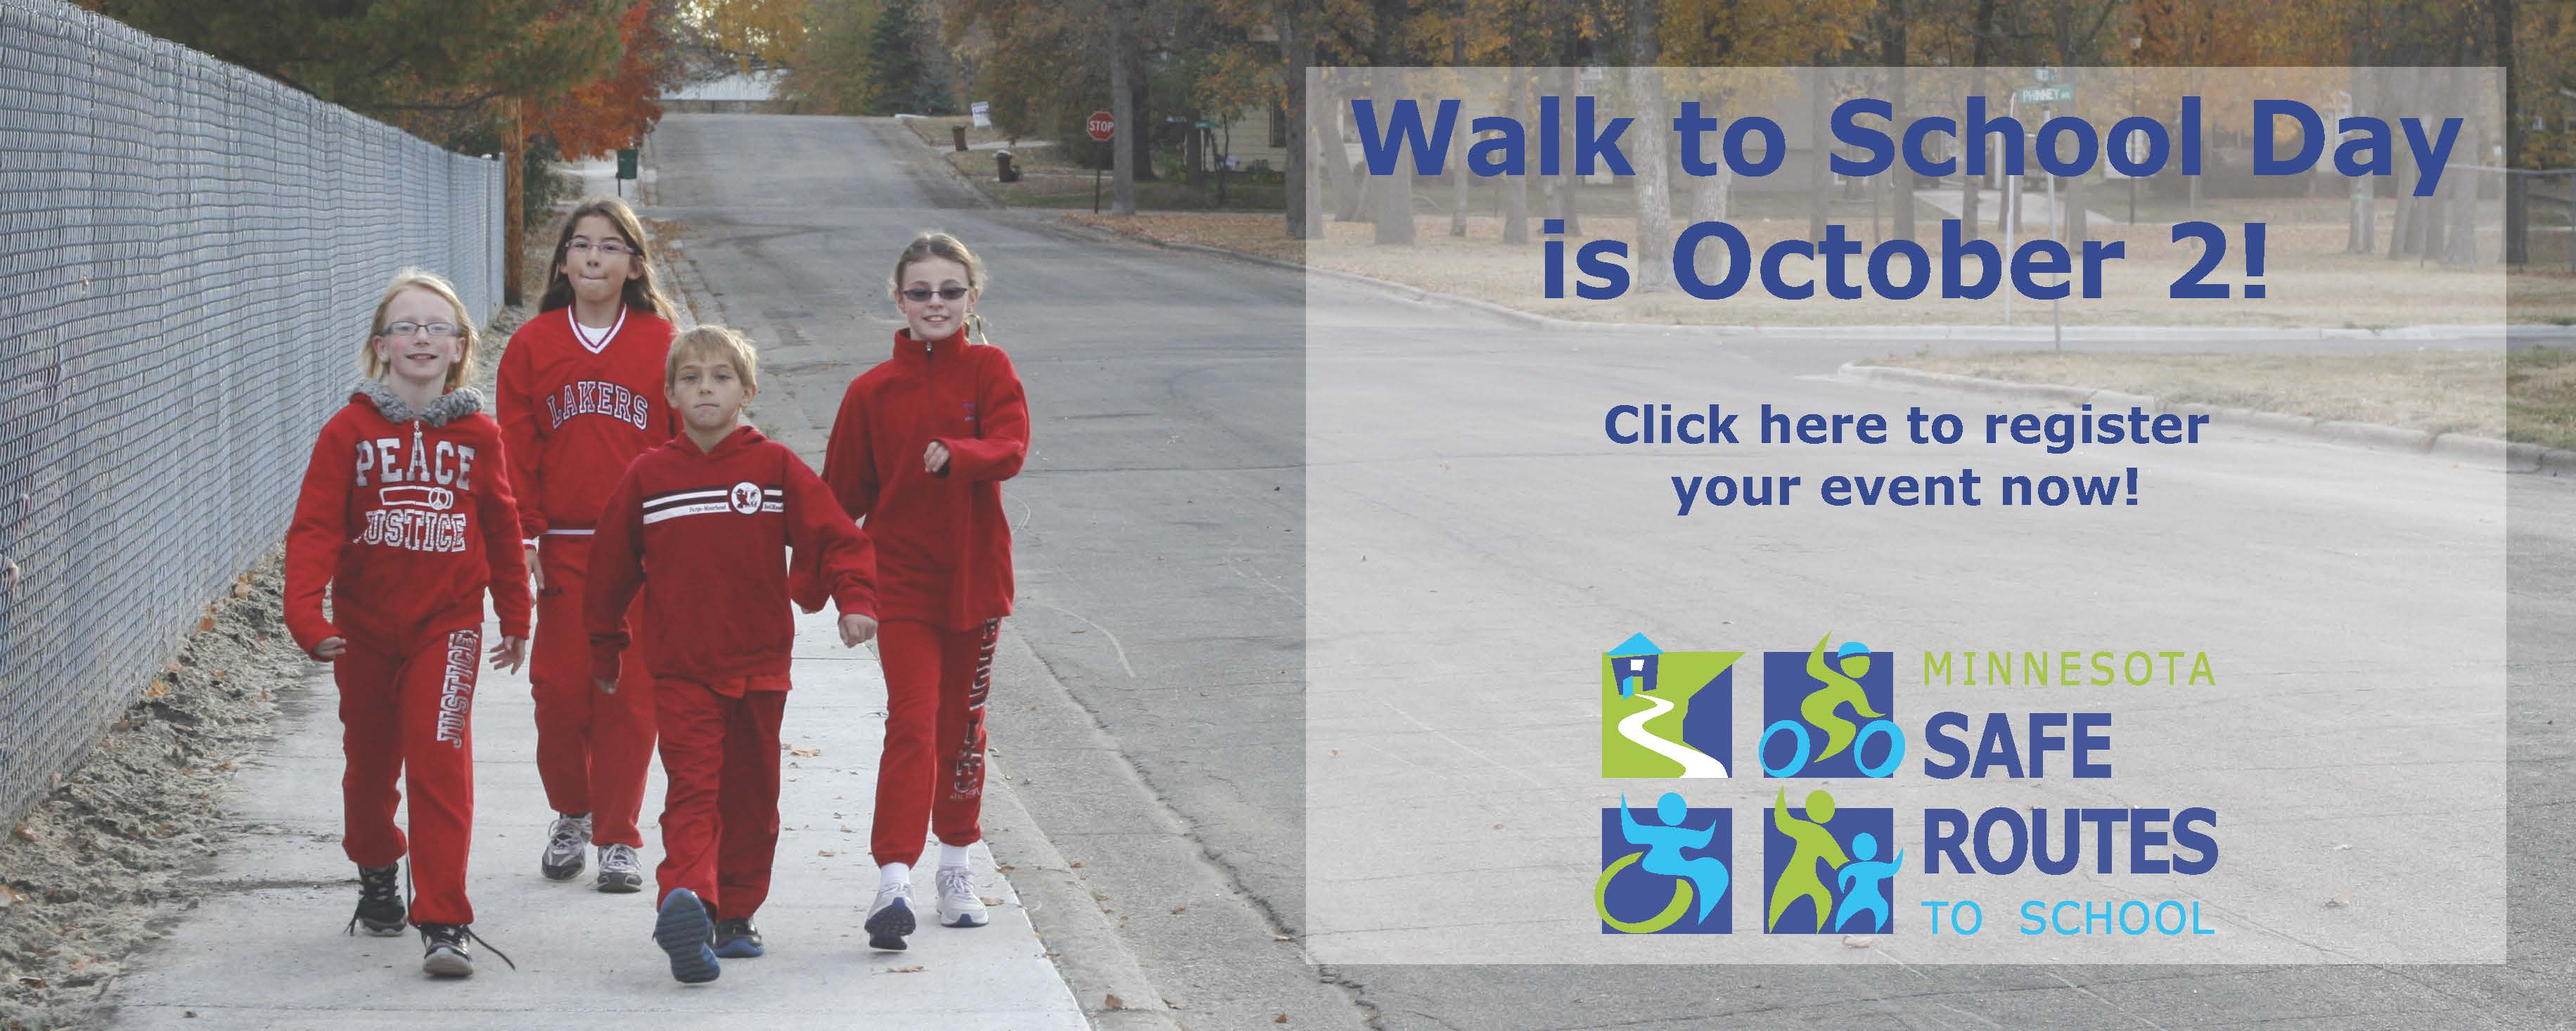 Walk to School Day is October 2, 2019! Click here to register your event now